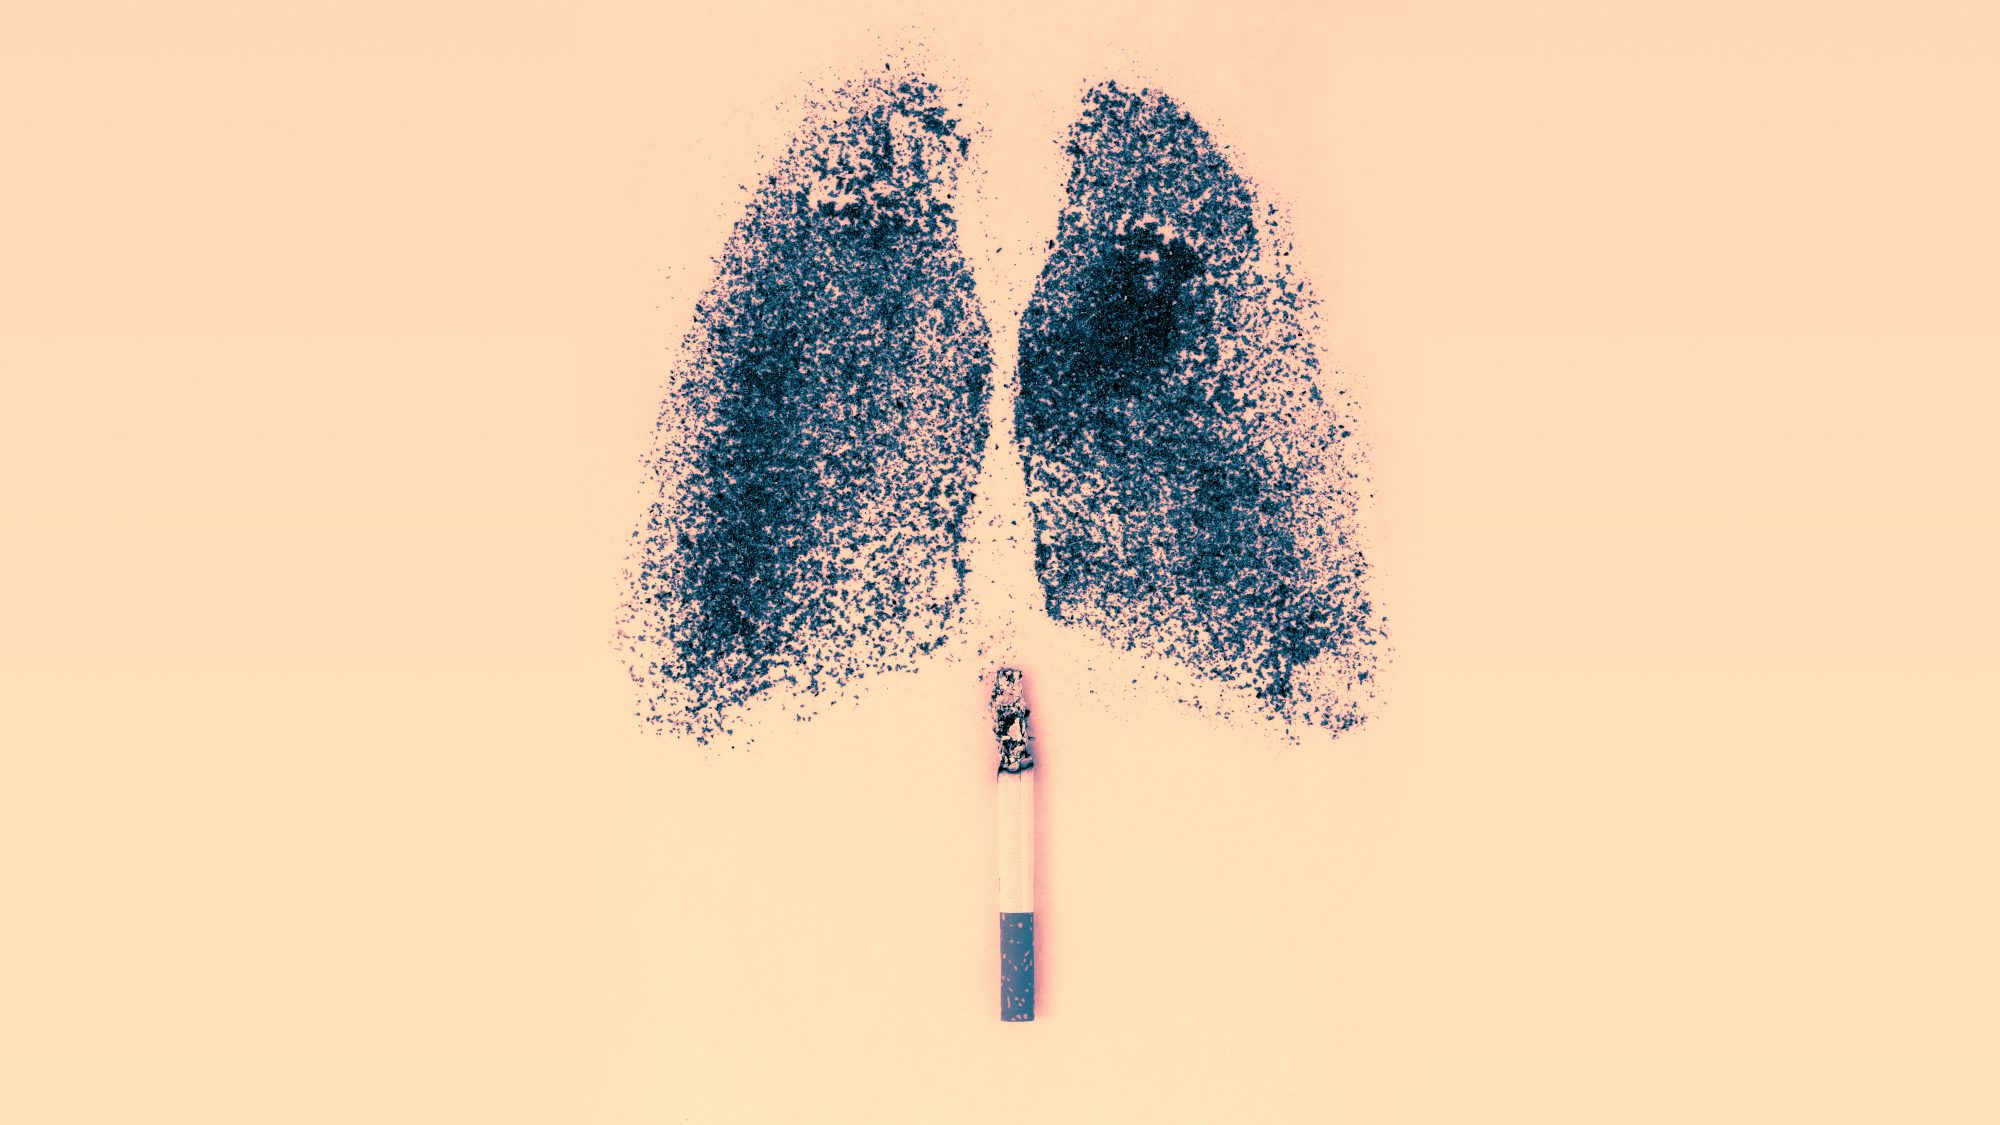 smoking emphysema health lungs breathing woman health cigarette ashes